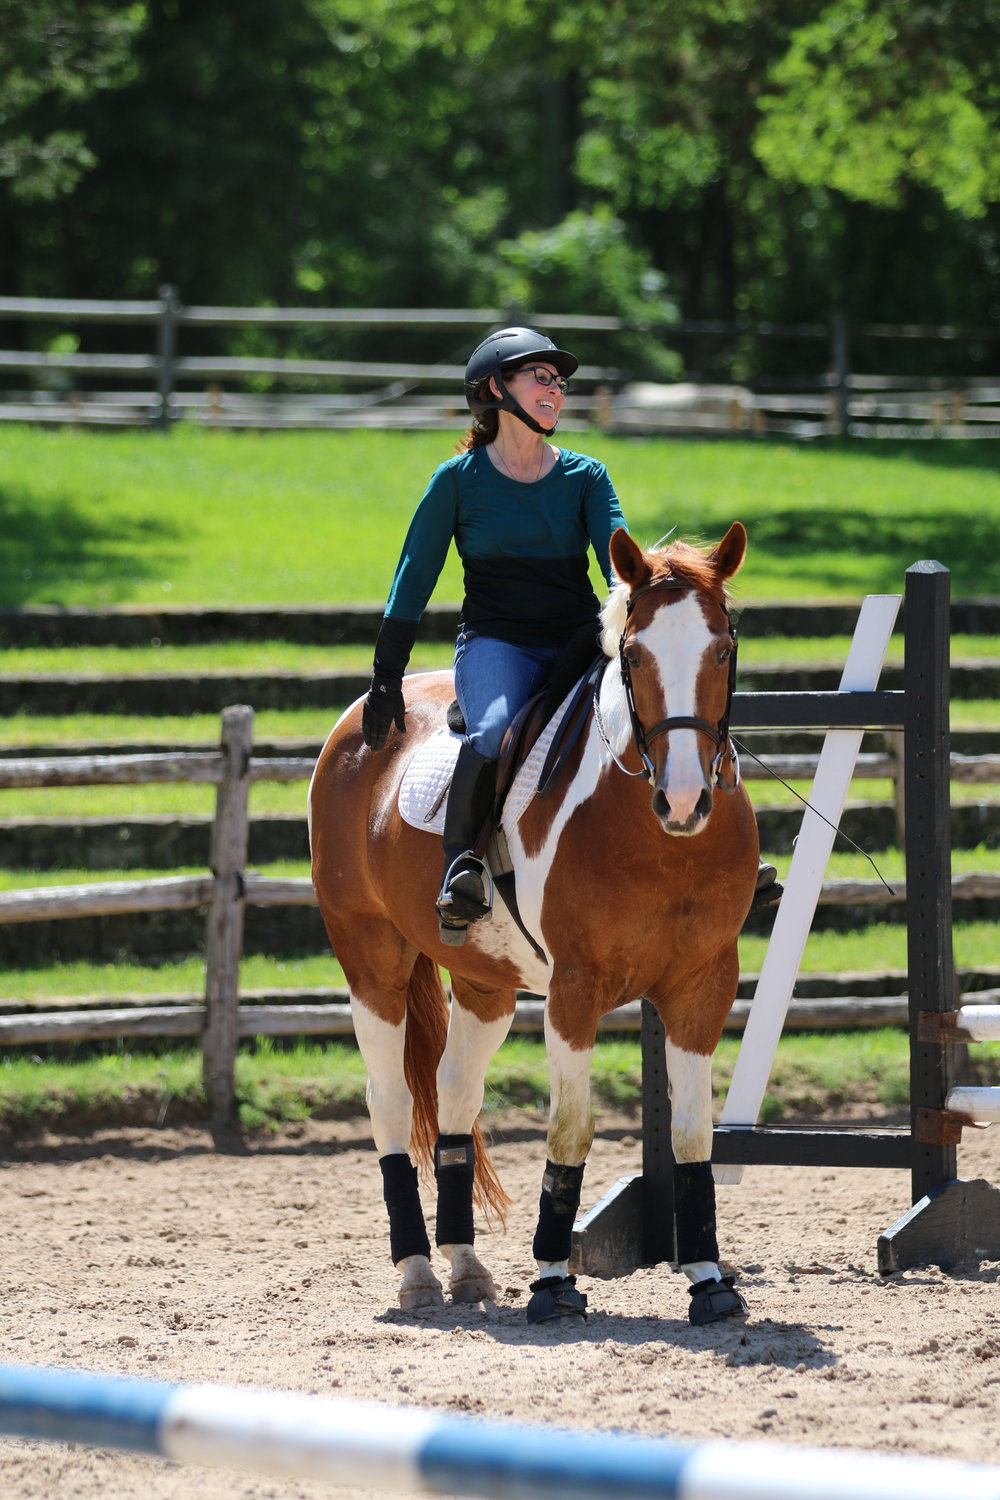 Casey Huber, Rockleigh Equestrian Centre Trainer